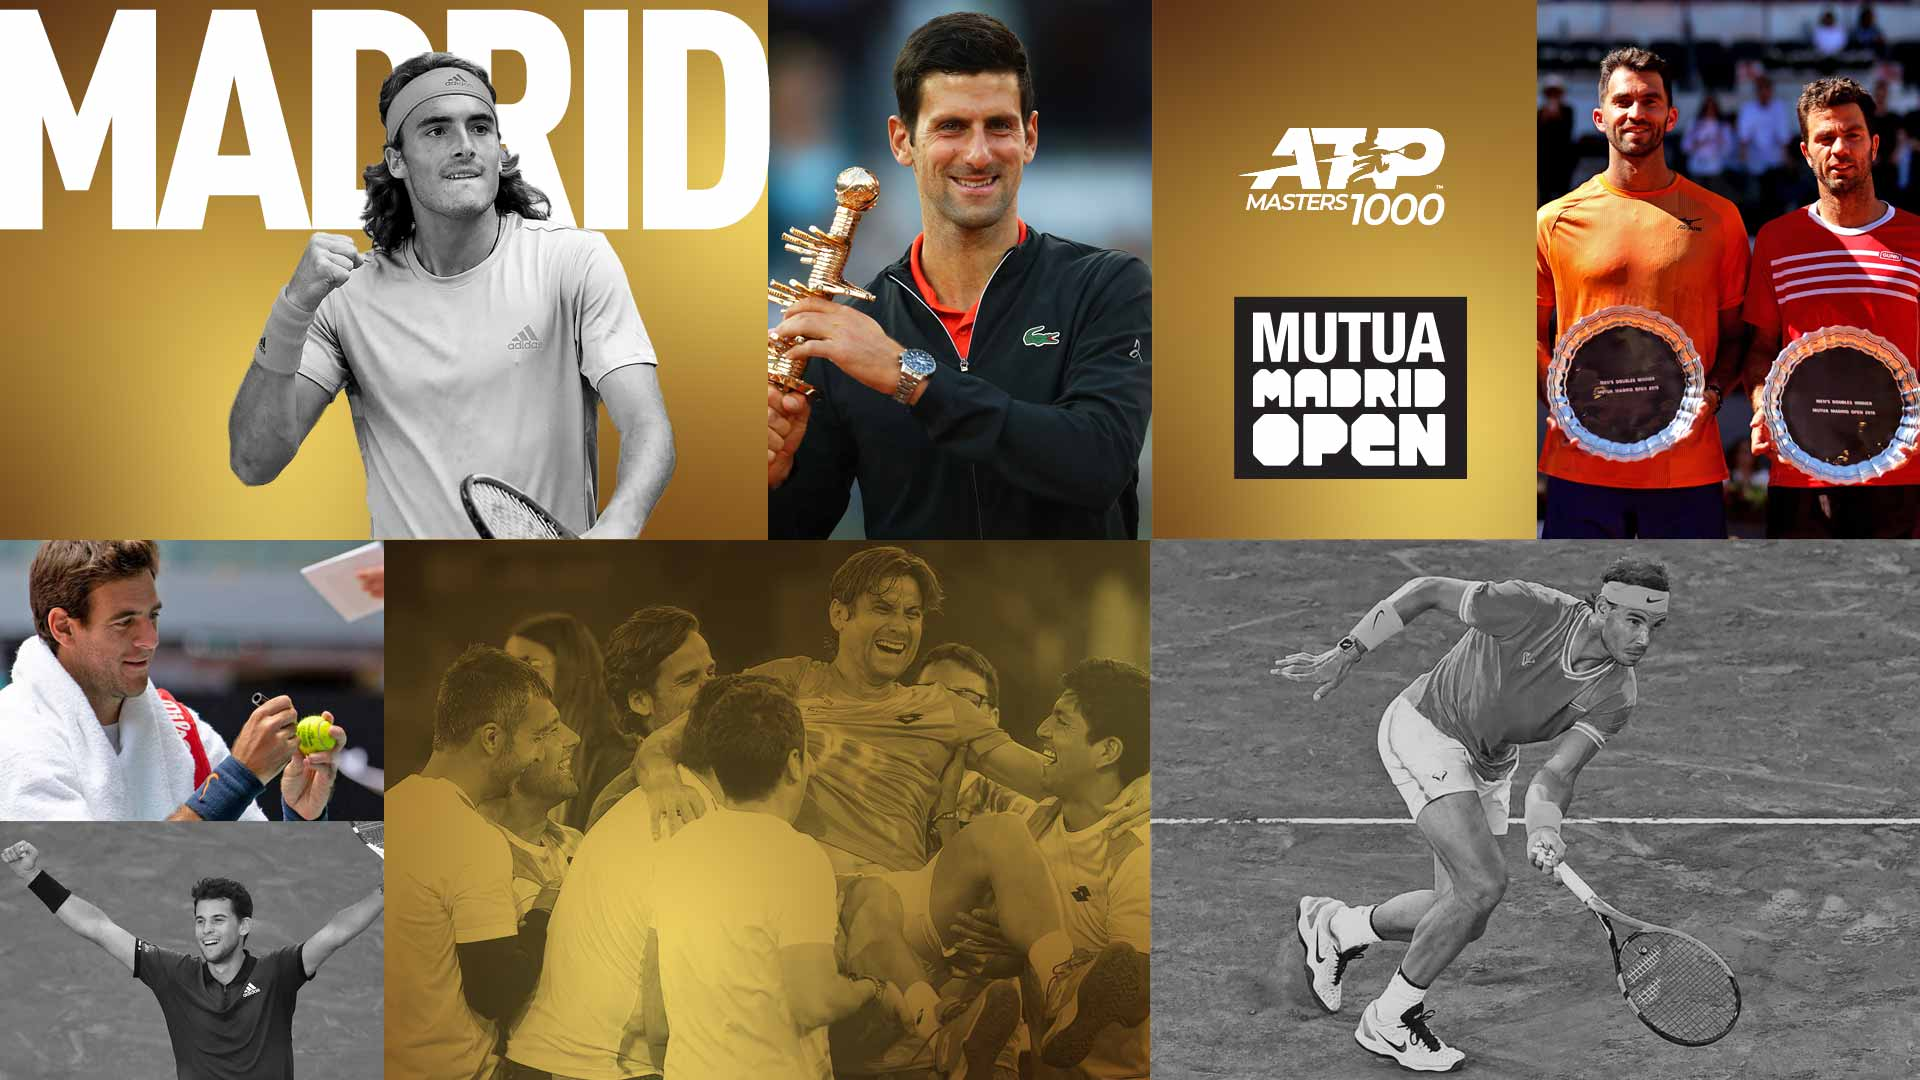 Novak Djokovic defeated Stefanos Tsitsipas to claim his 33rd ATP Masters 1000 title at the Mutua Madrid Open.